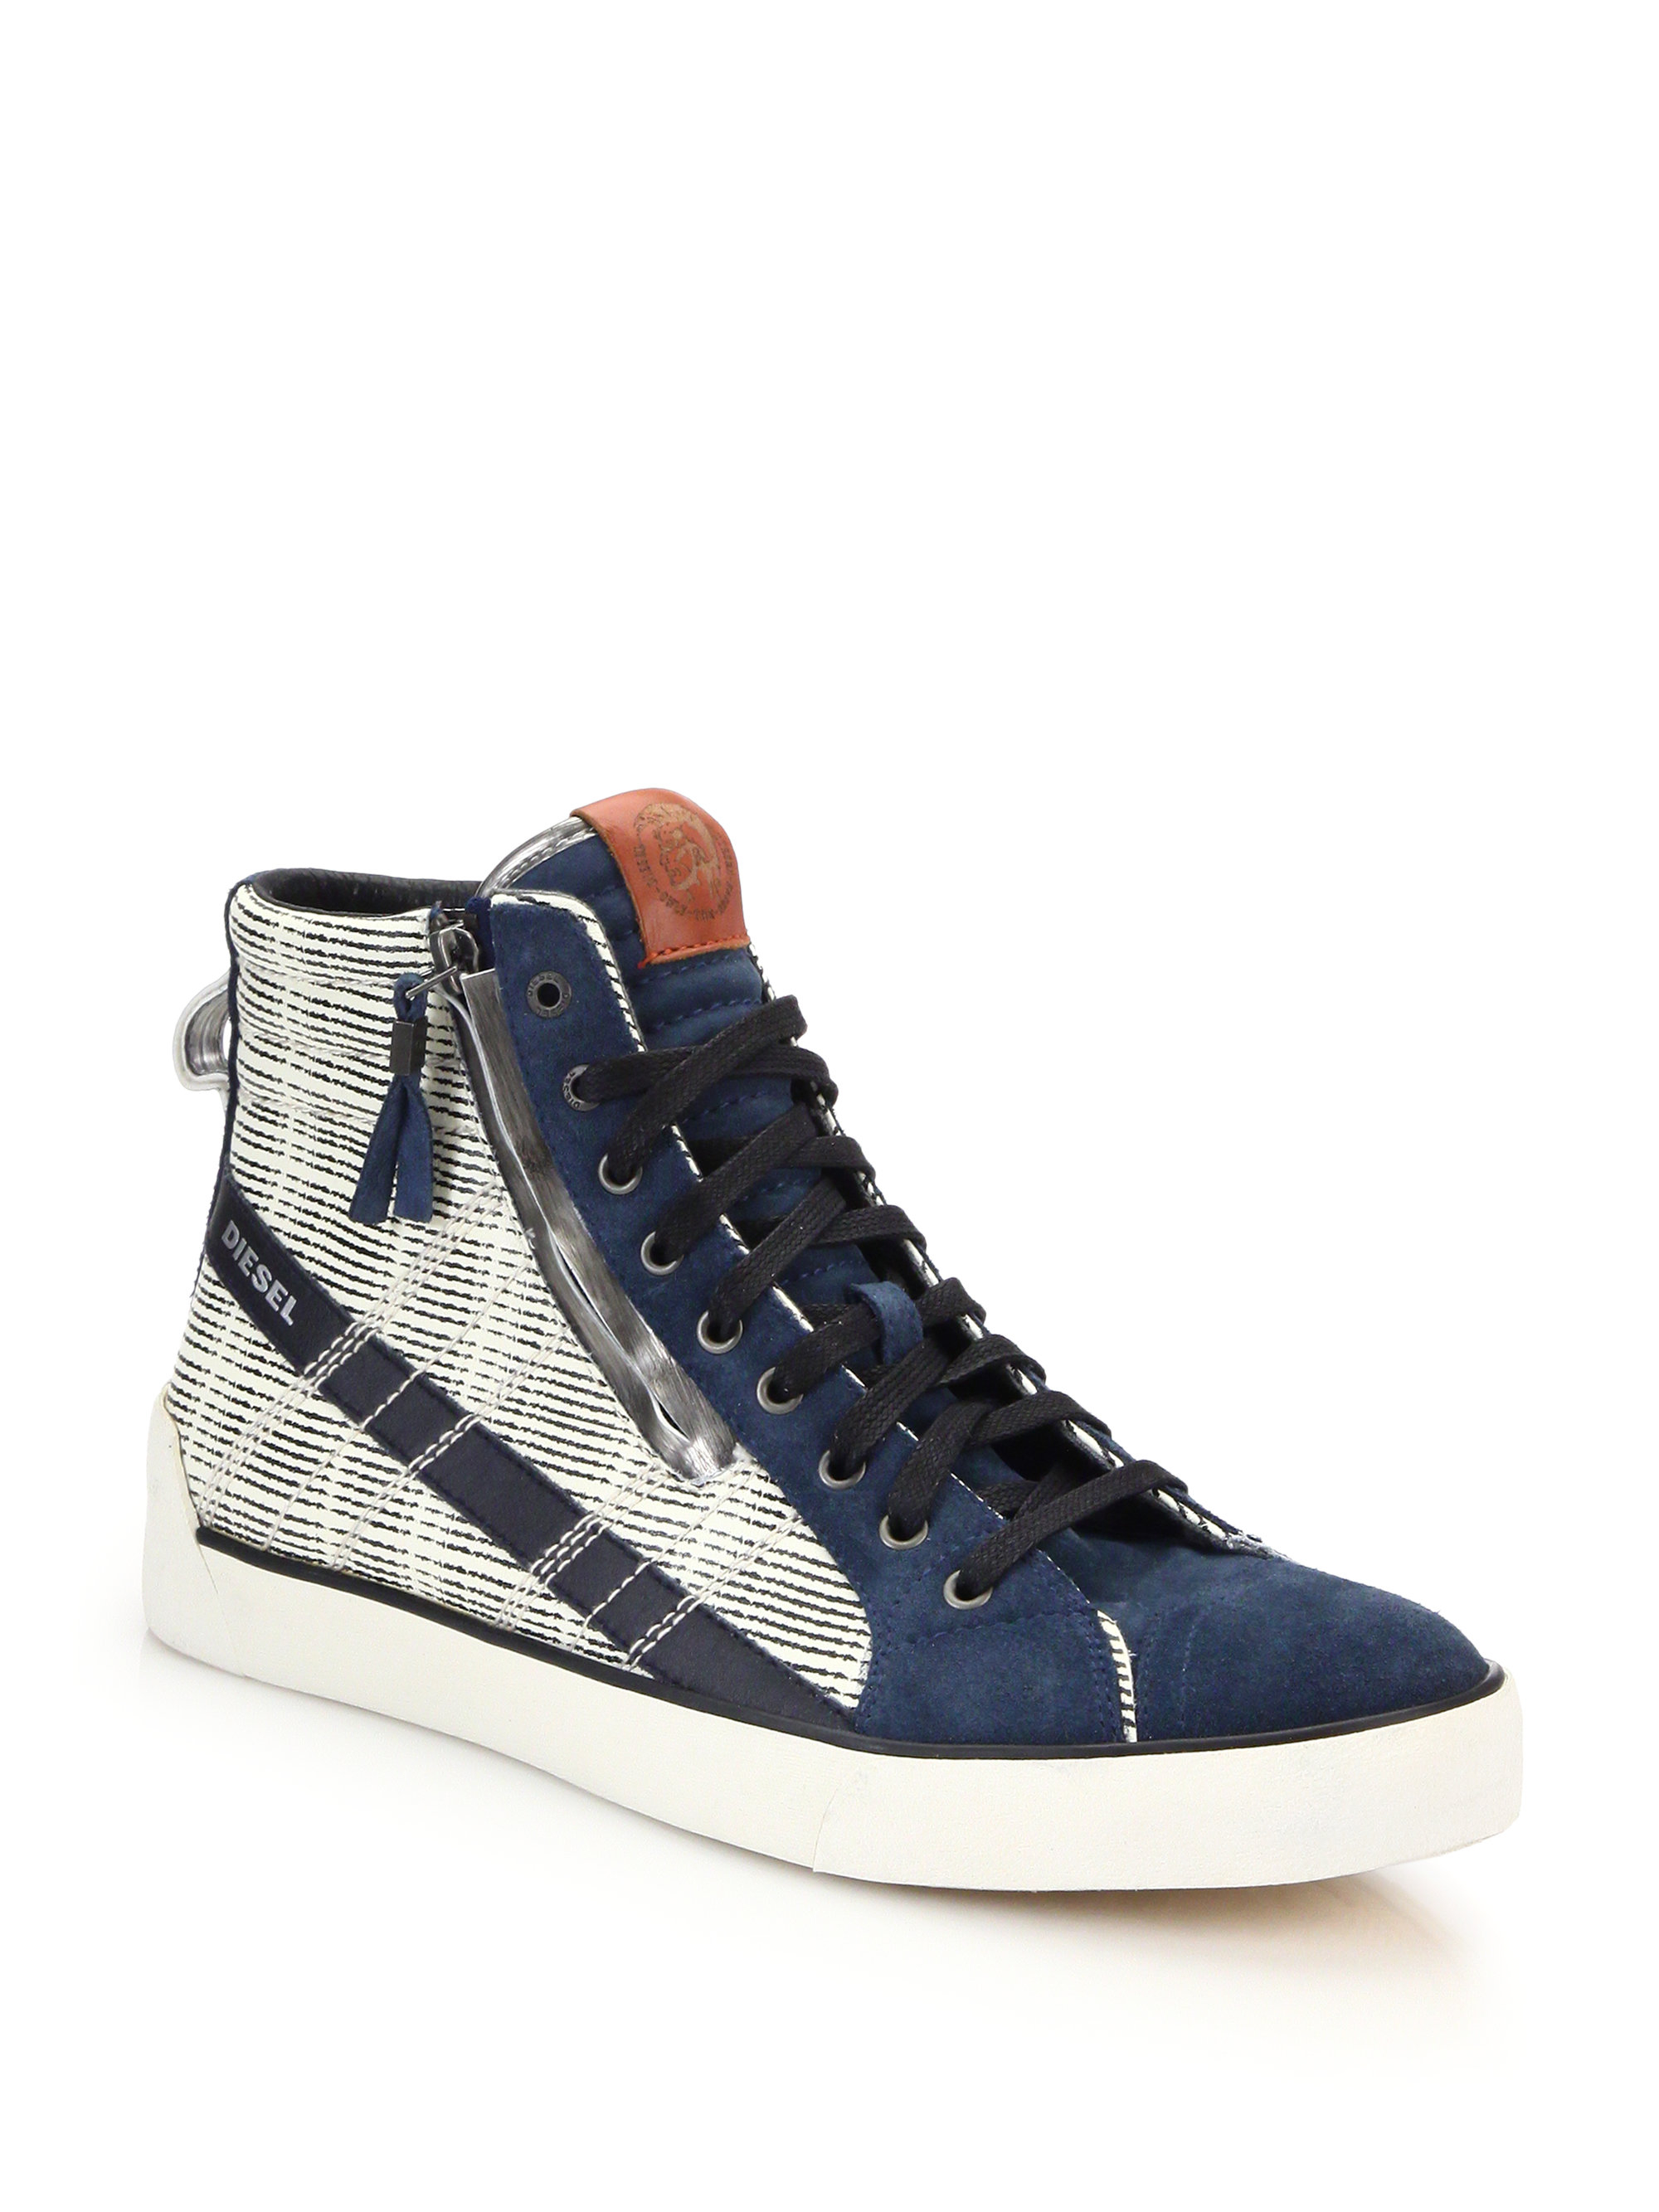 DIESEL D-string Leather & Suede High-top Sneakers in Blue ...